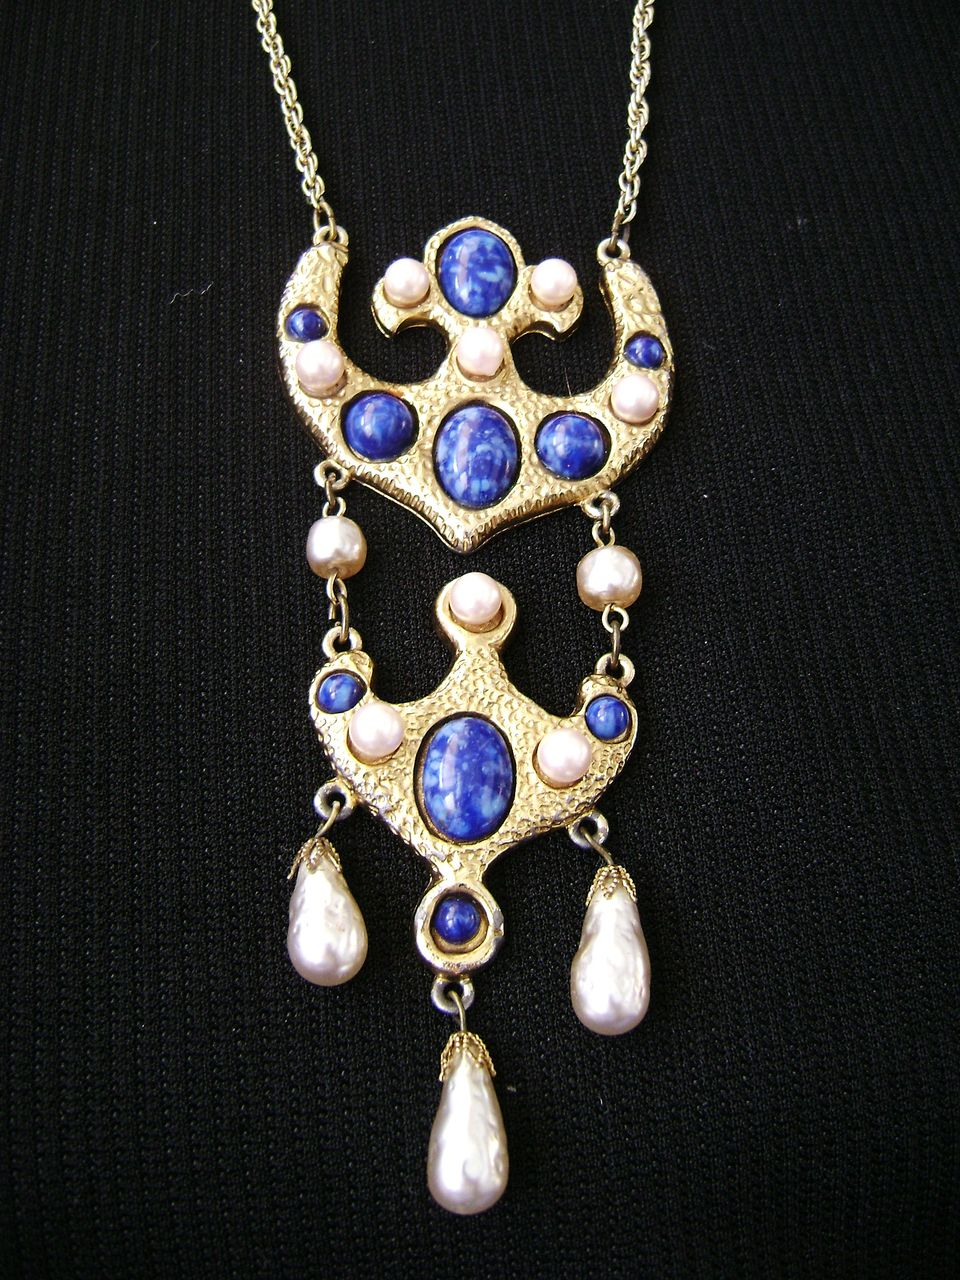 Egyptian Revival Lapis & Faux Pearl Articulated Gold Tone Pendant